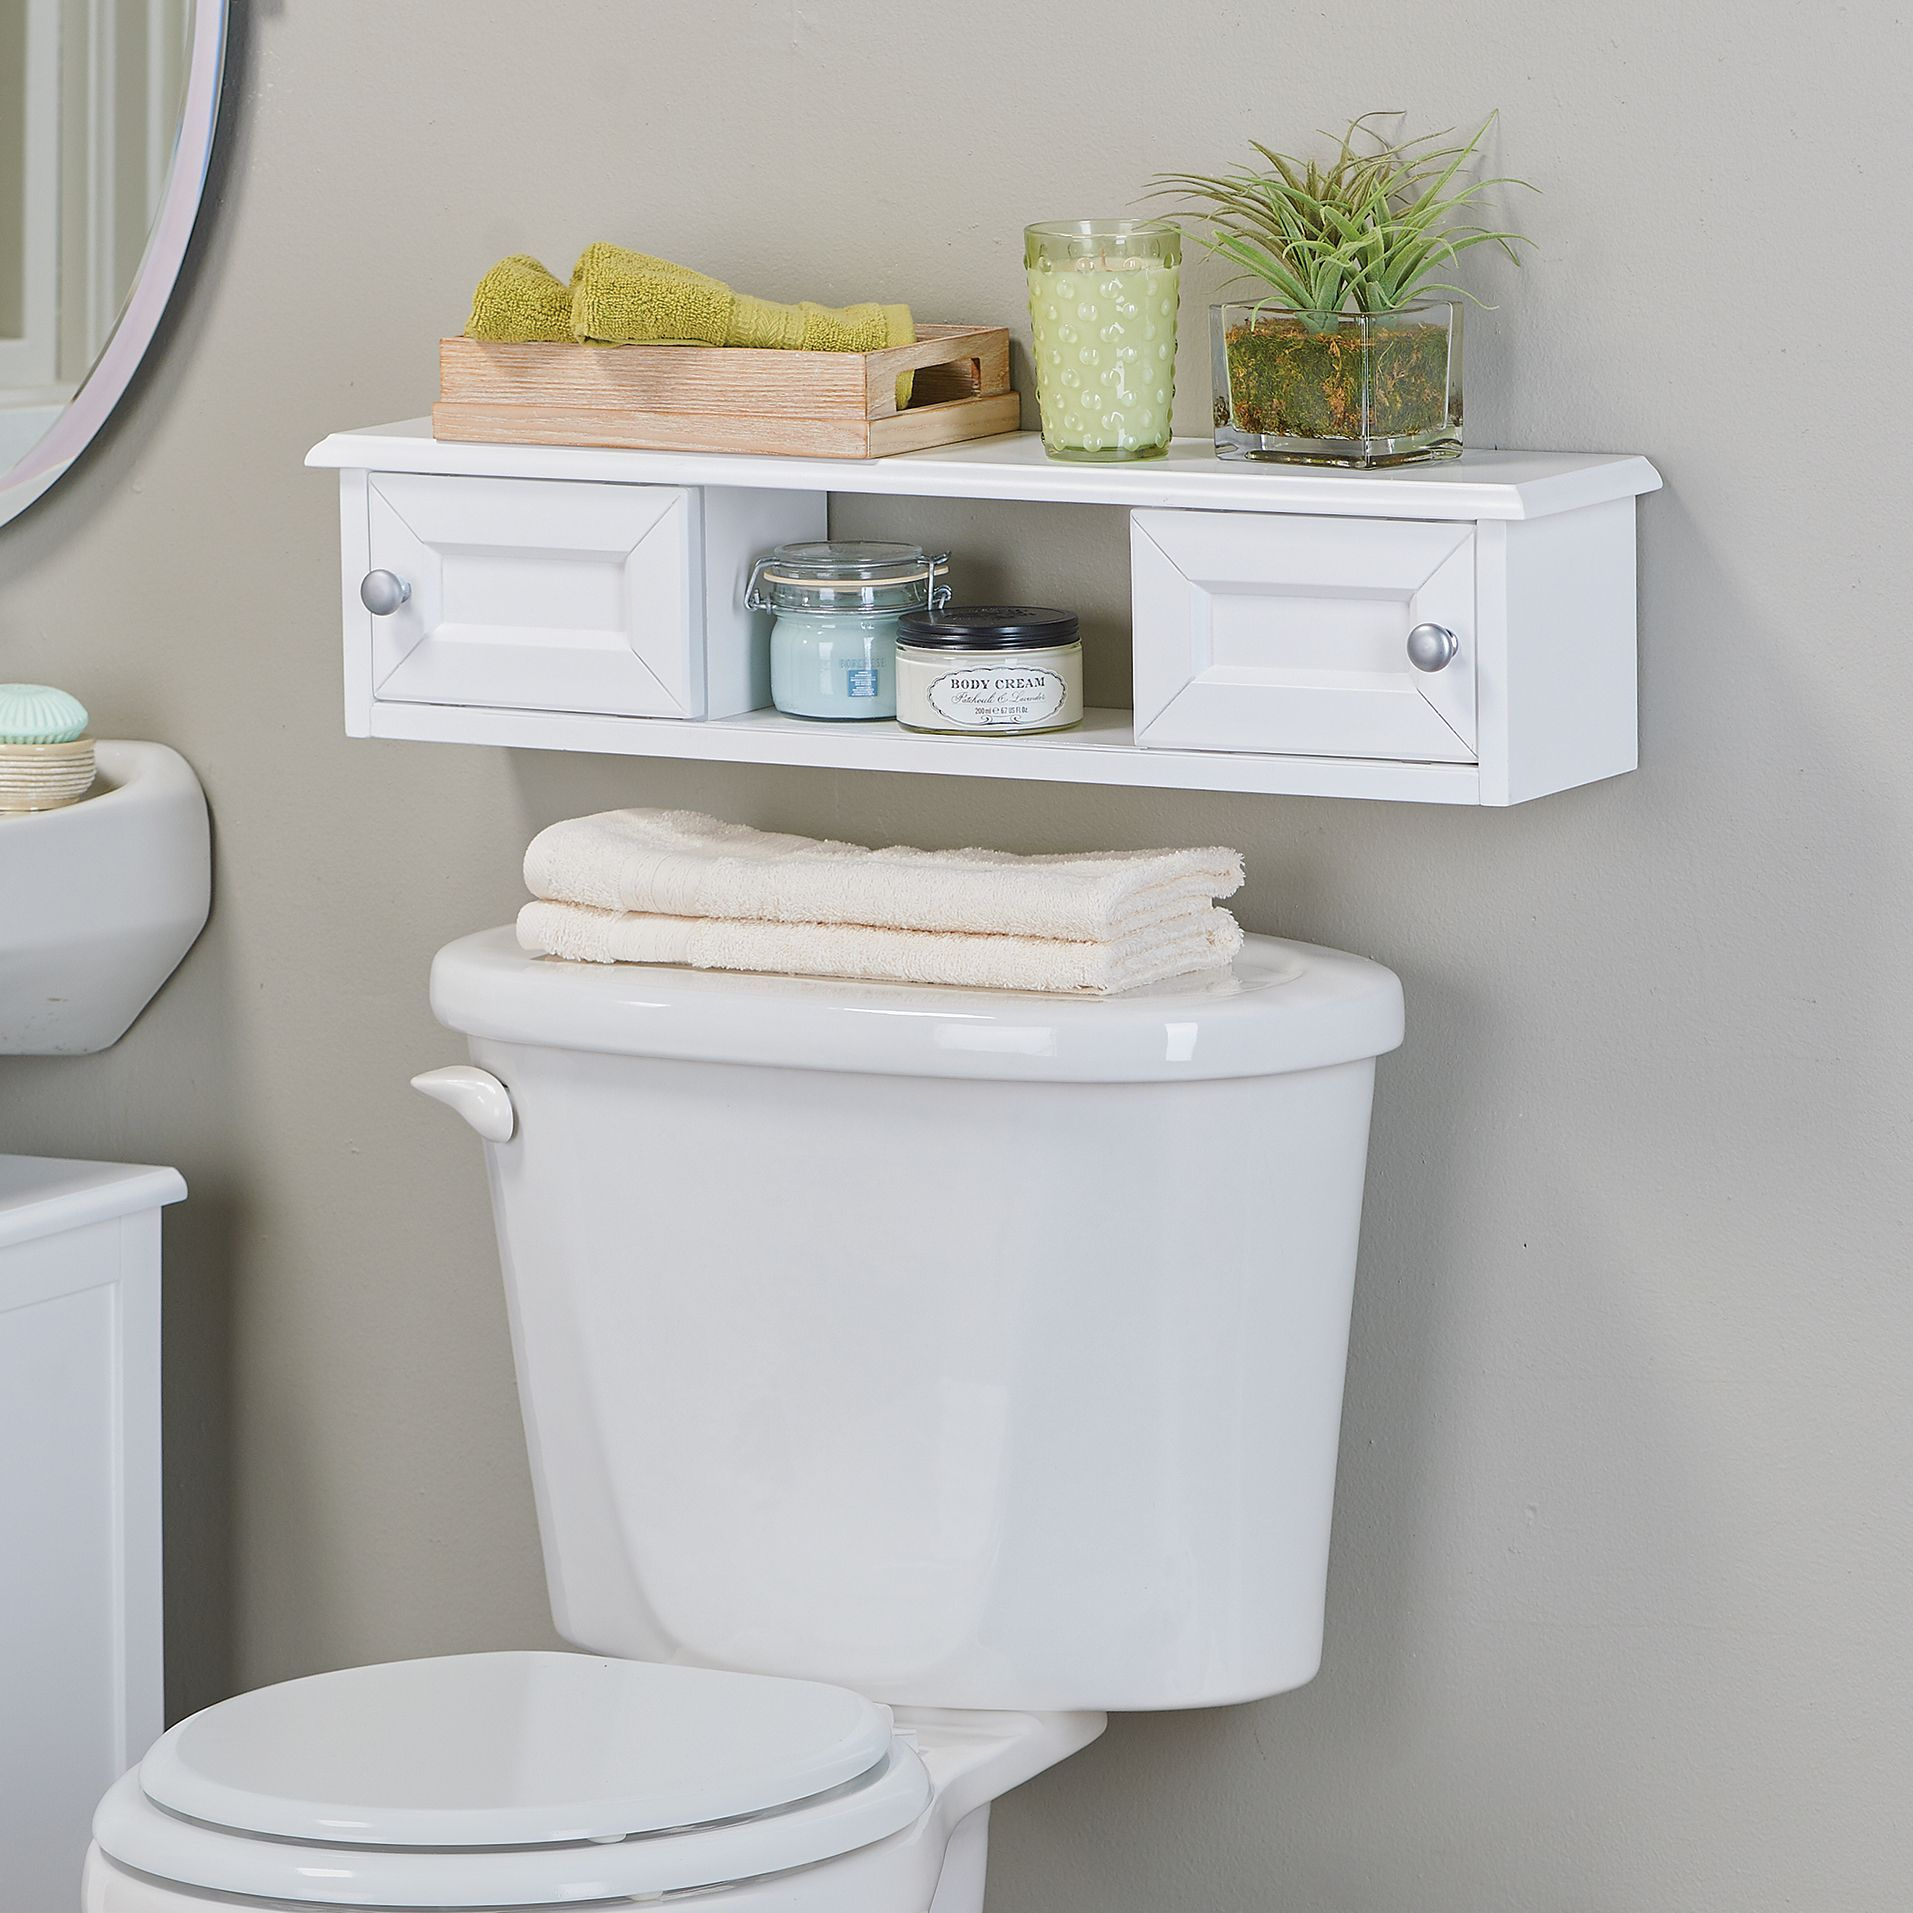 Weatherby Wall Mounted Cabinet Small Bathroom Storage Cabinet Comes In White And Blends In